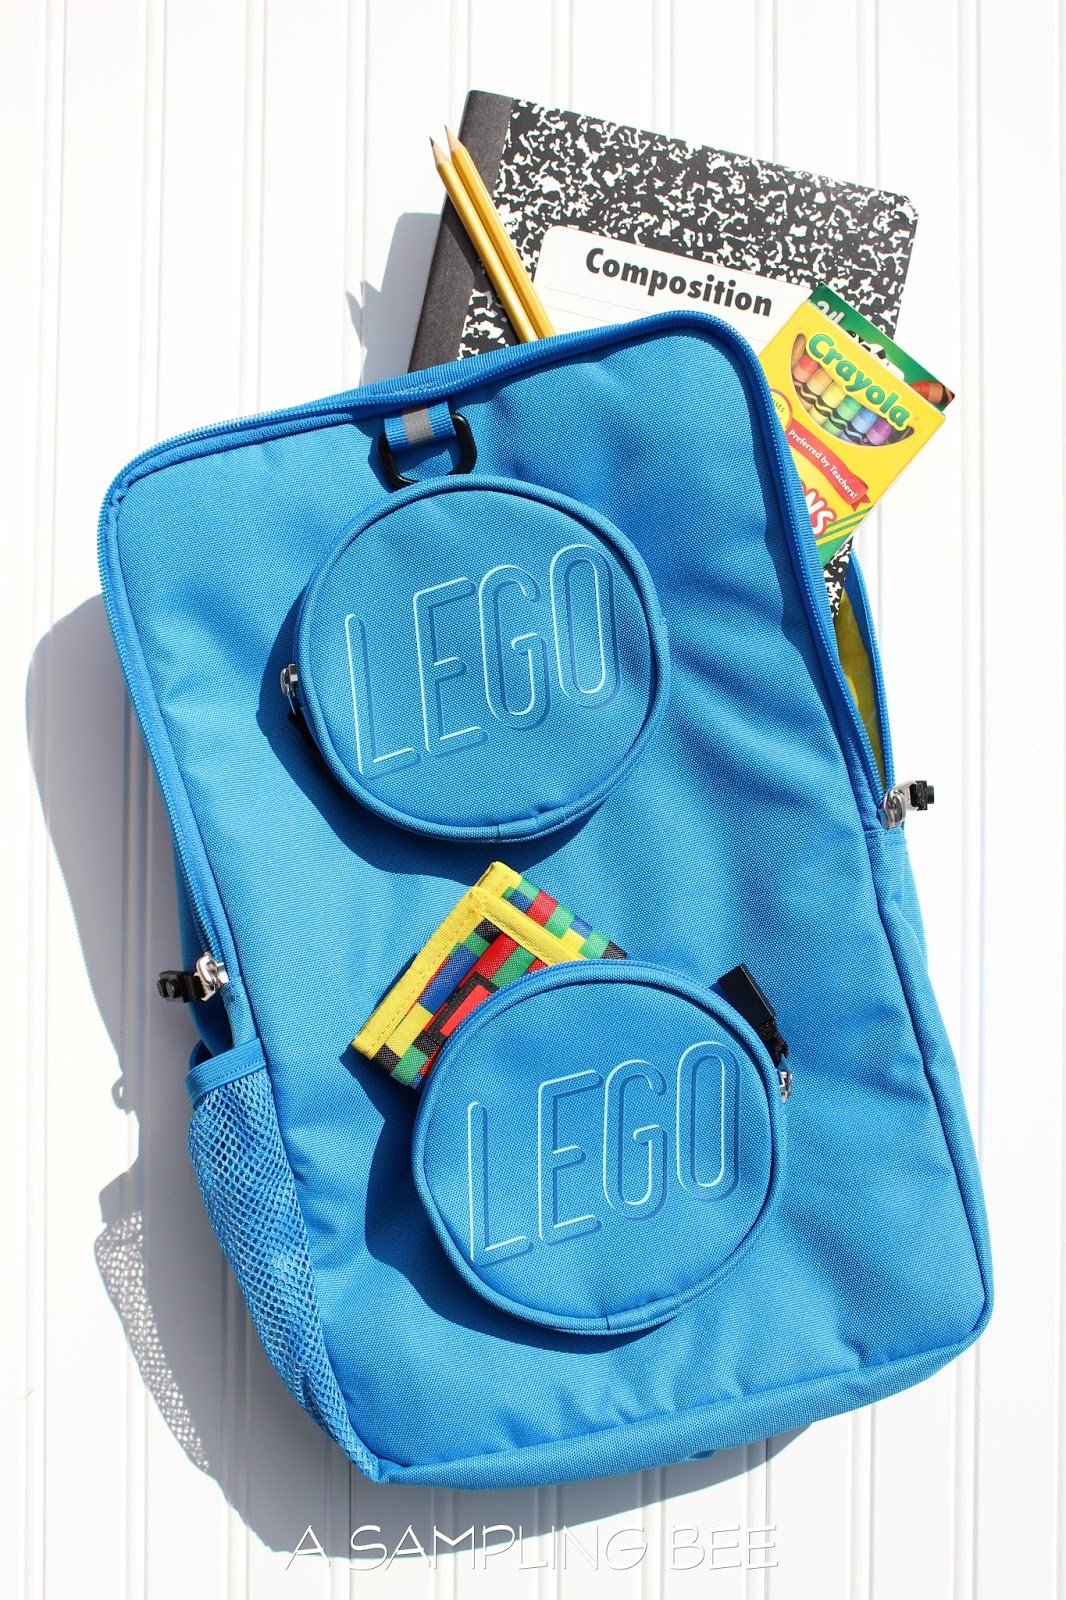 00378d6f73 Lego Brick Eco Backpacks are available in four colors  blue